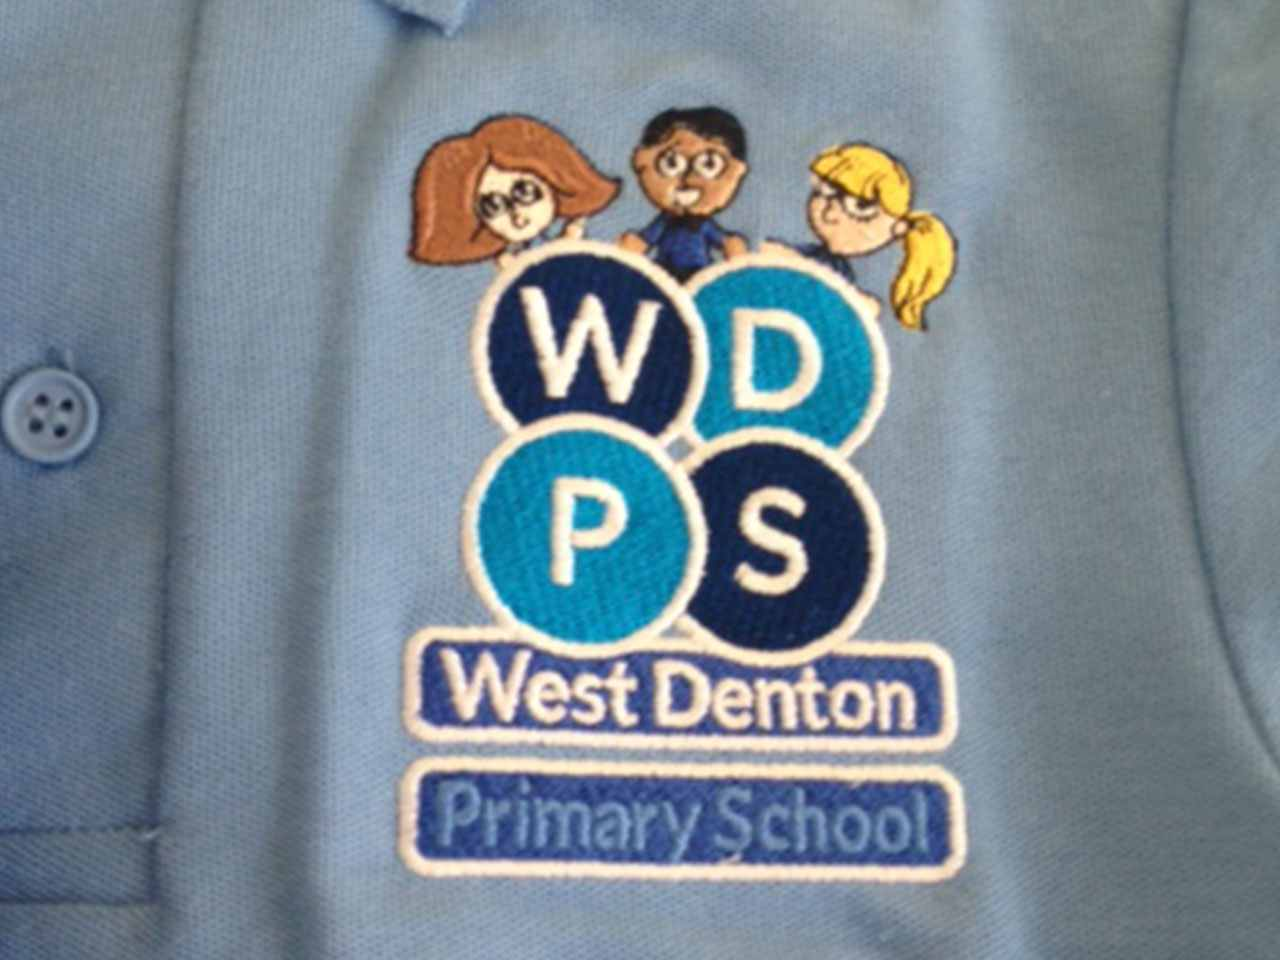 WDPS-Logo-on-Uniform-2